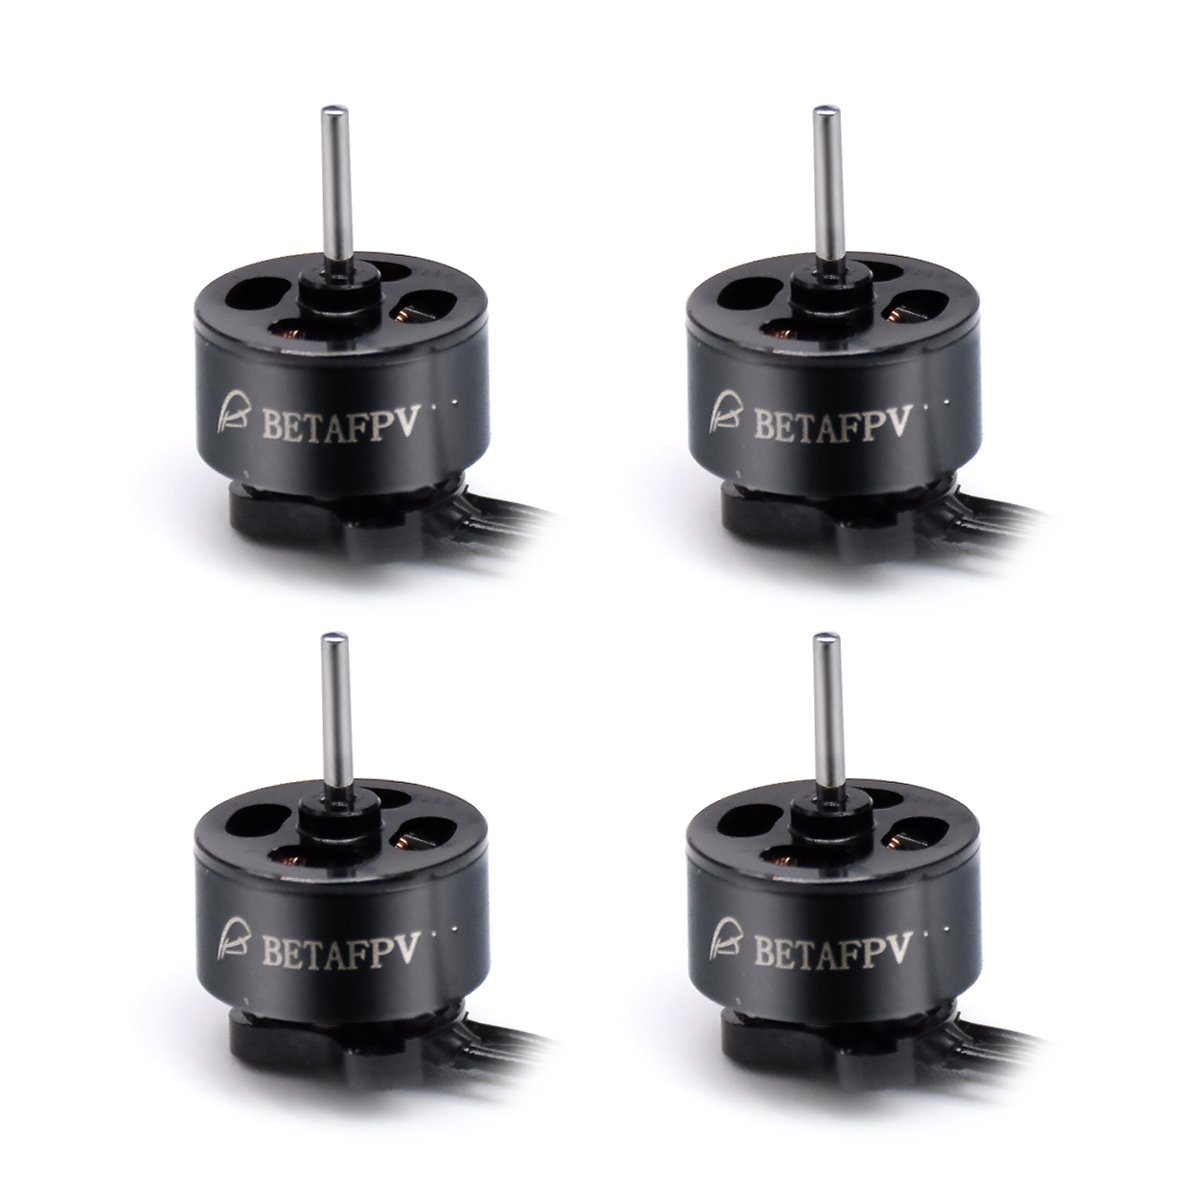 Beta FPV 0703 15000KV Brushless Motors 4set